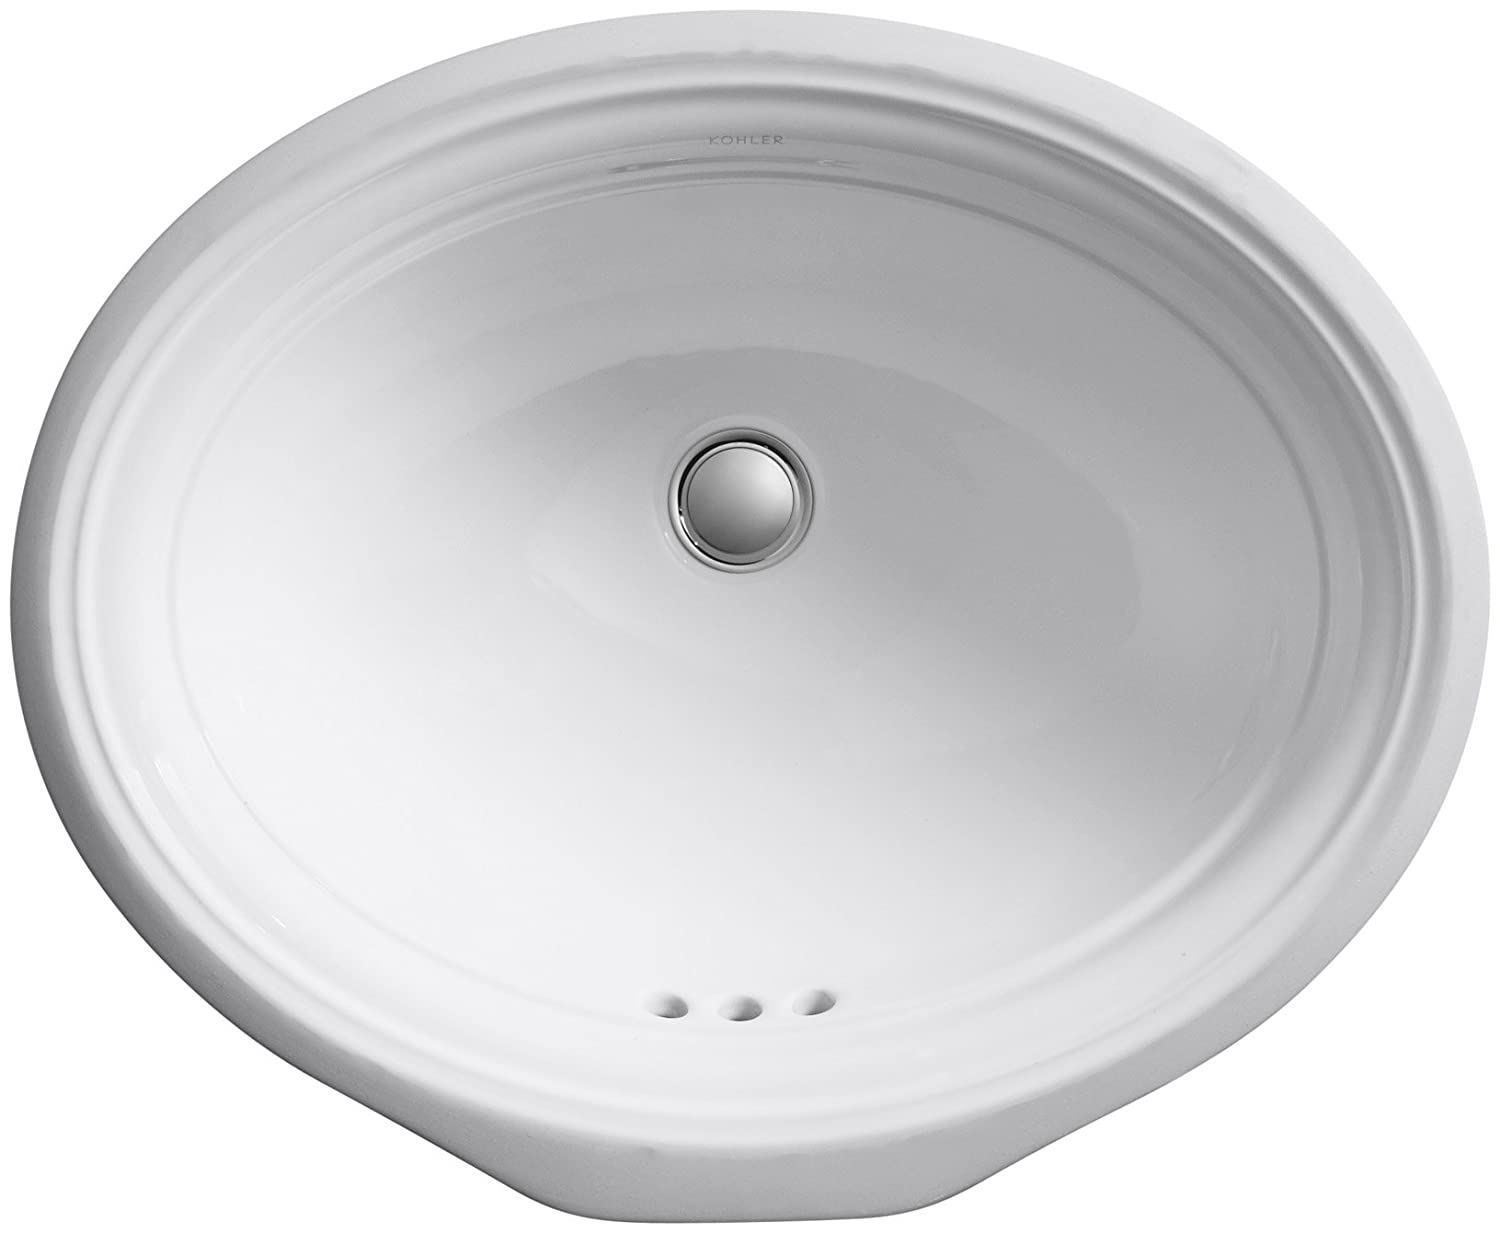 KOHLER K-2336-0 Devonshire Undercounter Bathroom Sink, White